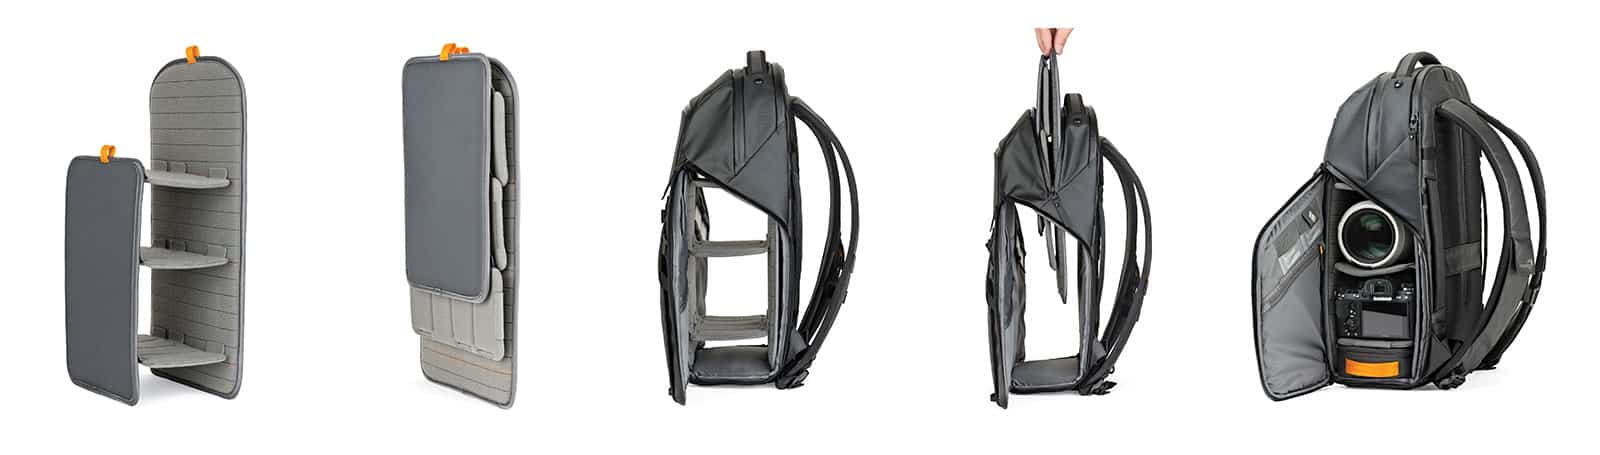 Lowepro FreeLine BP350 AW shelf system